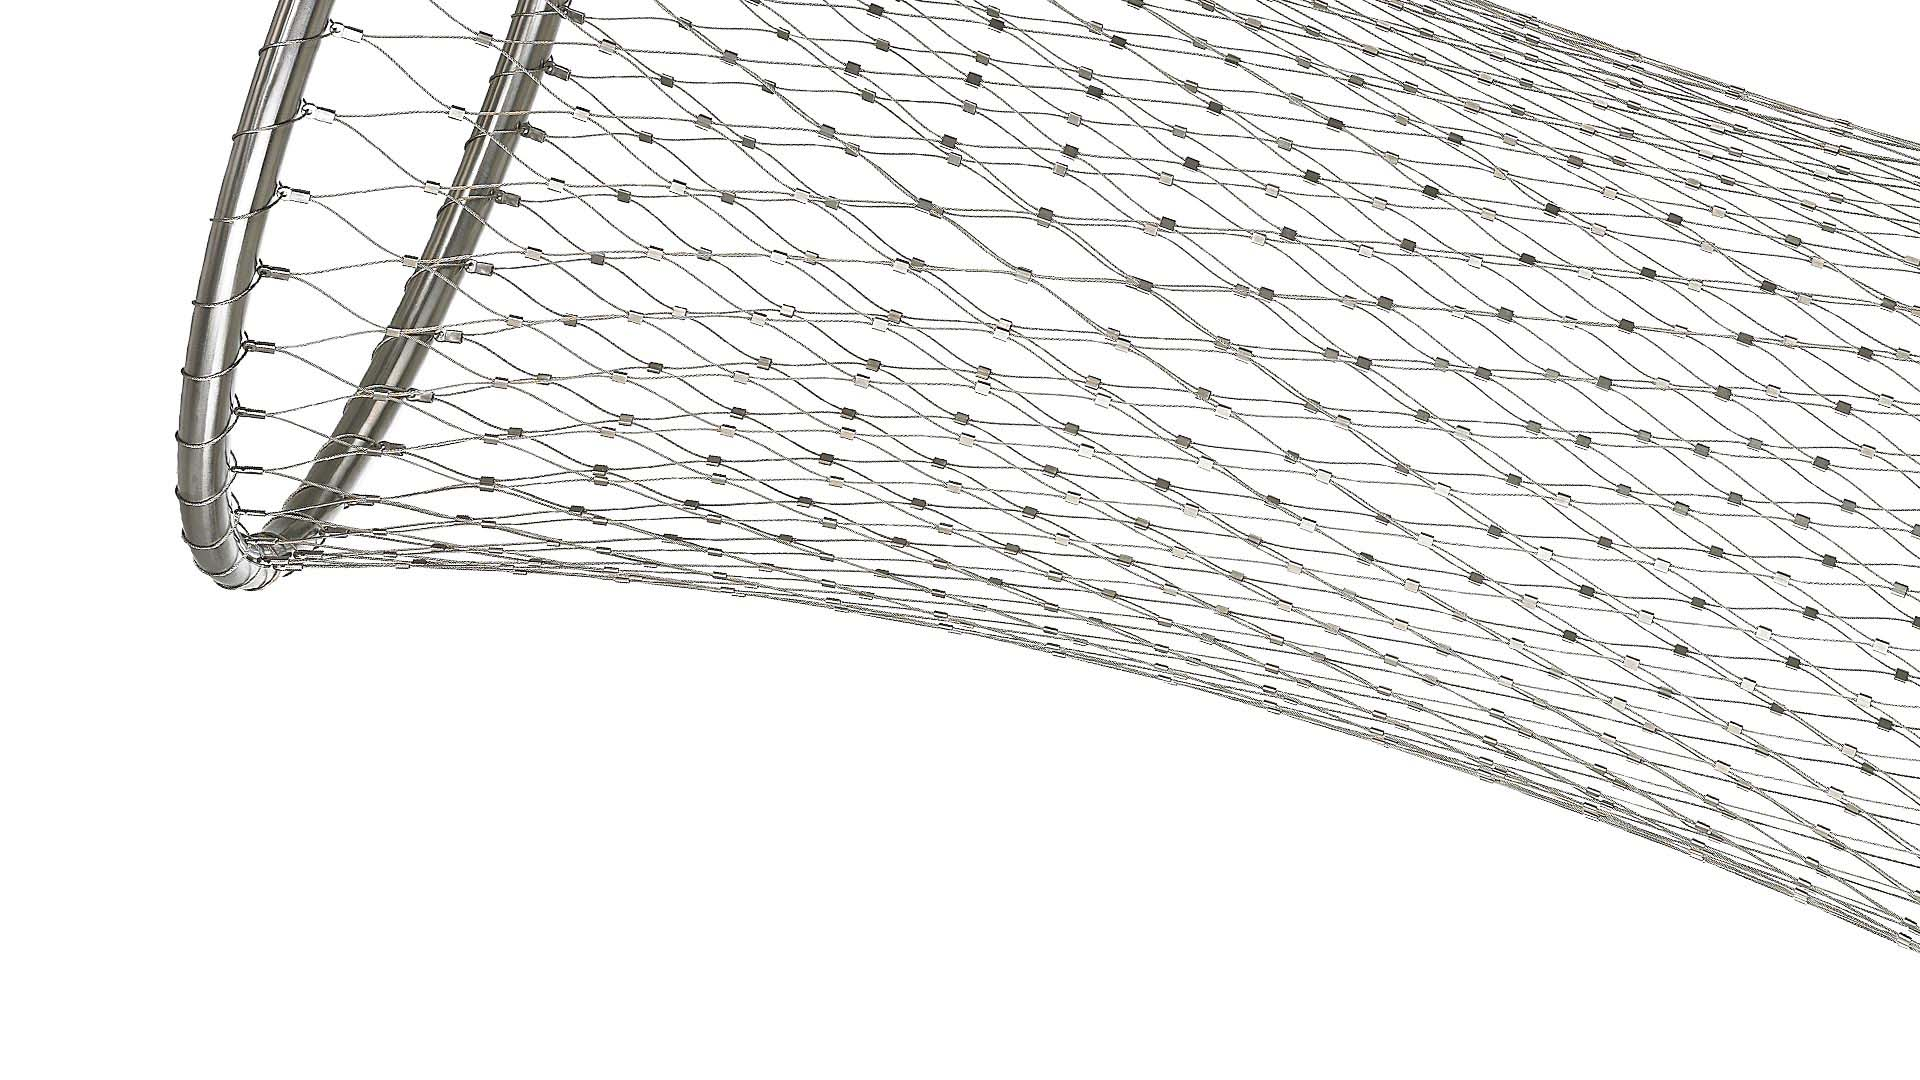 Ball stop nets, playgrounds and more with stainless steel nets